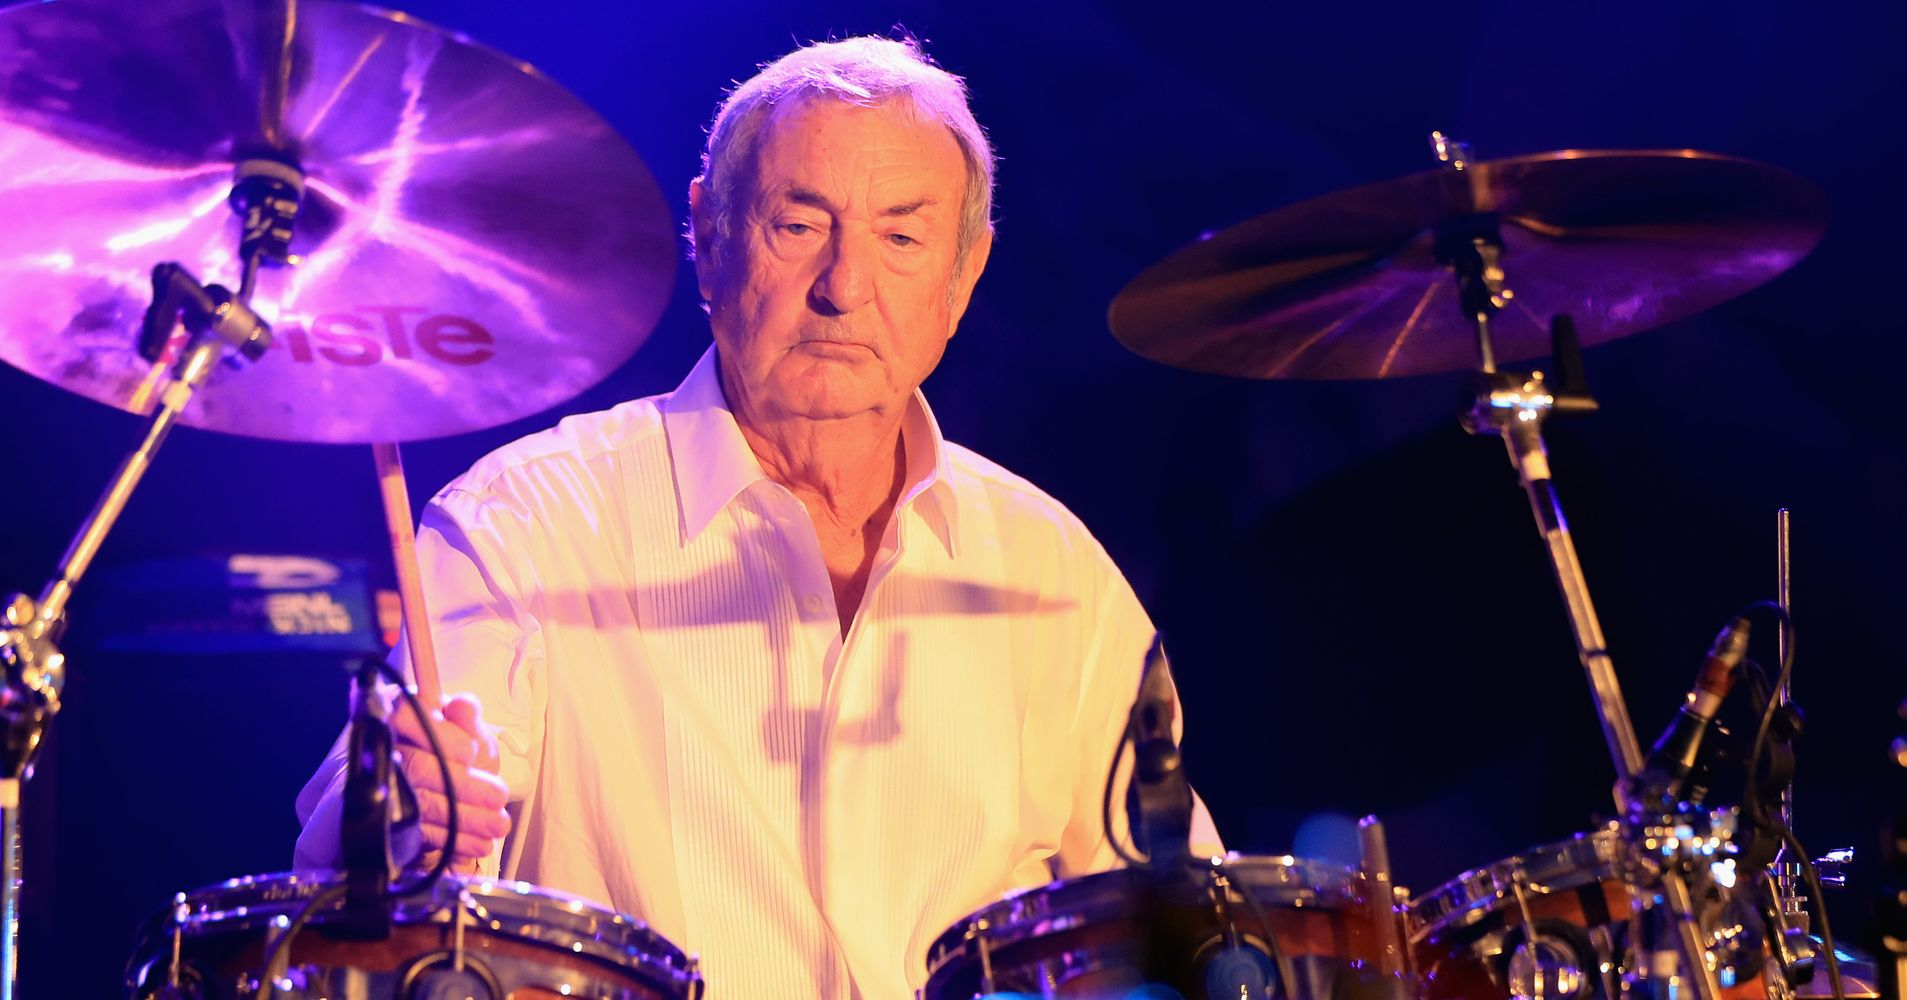 Pink Floyd Co-Founder Forms New Act To Play The Band's Earliest Songs Live